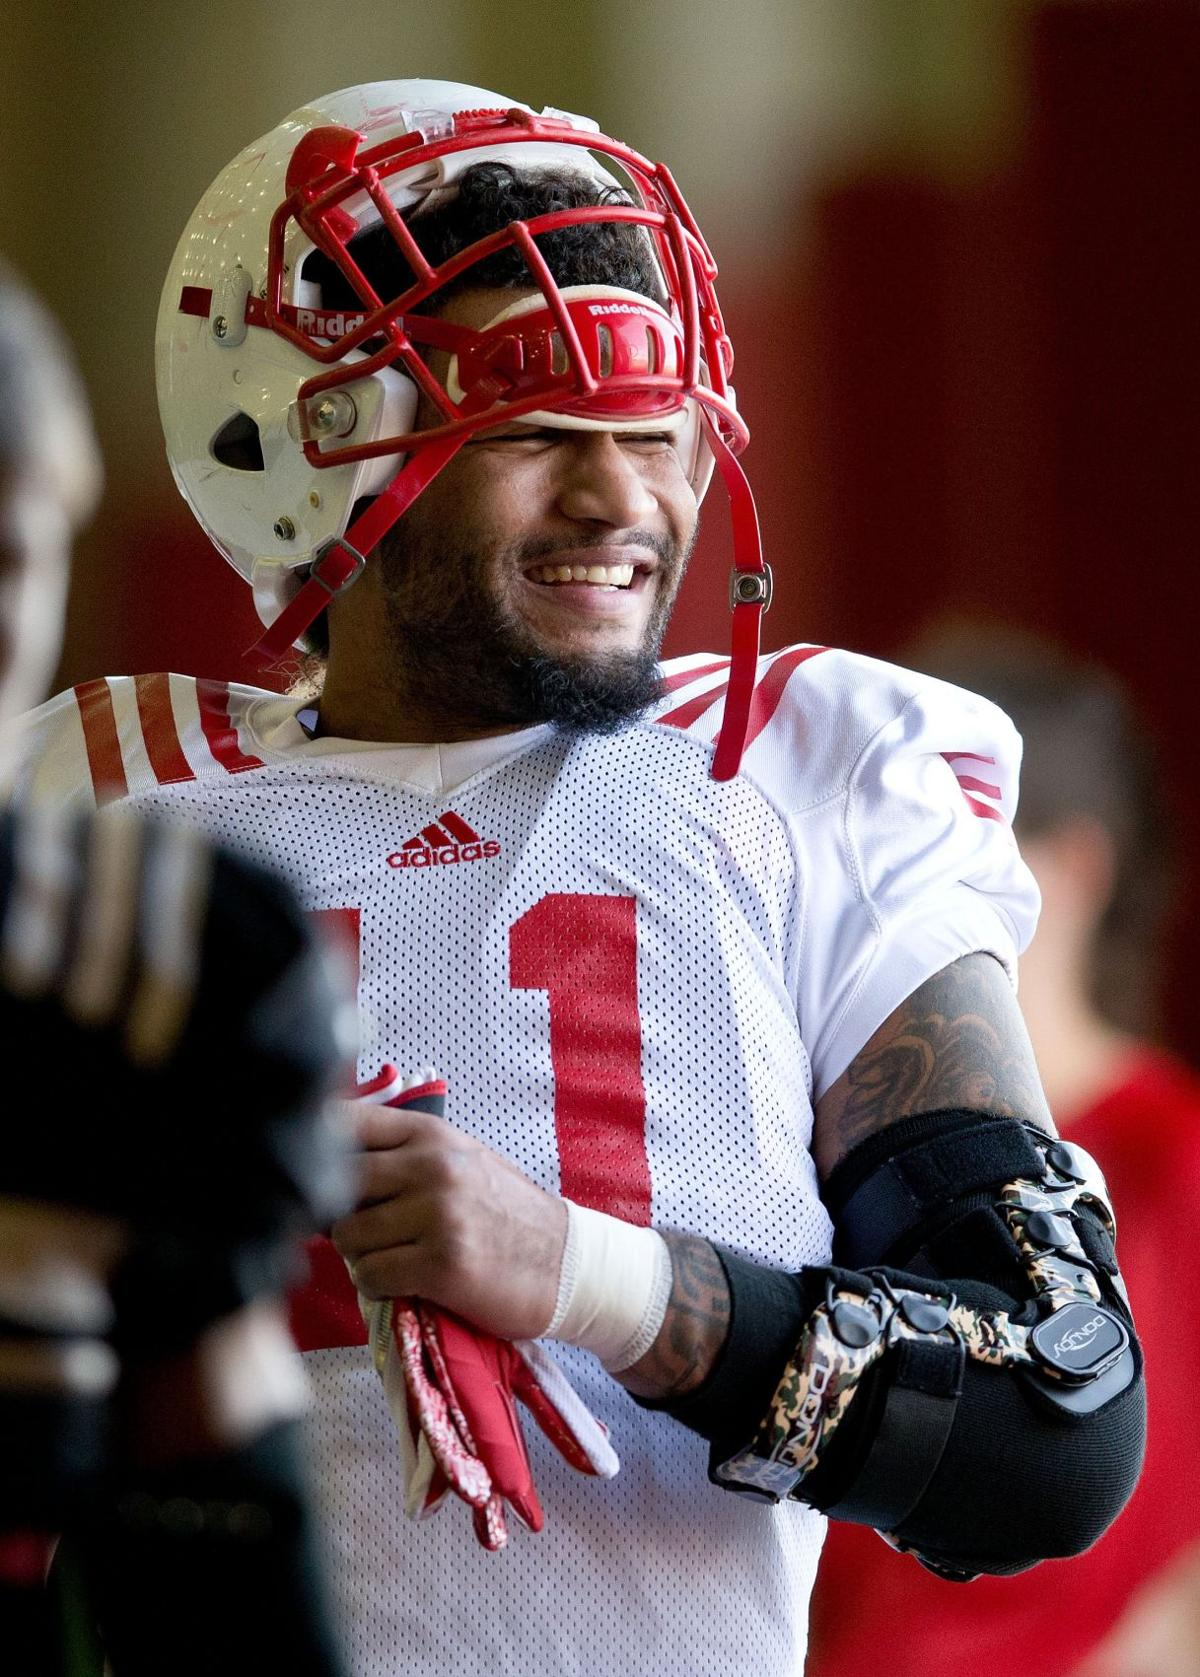 Chatelain: Huskers Carter, Gerry are symbols of senior journey; this group has been through a lot